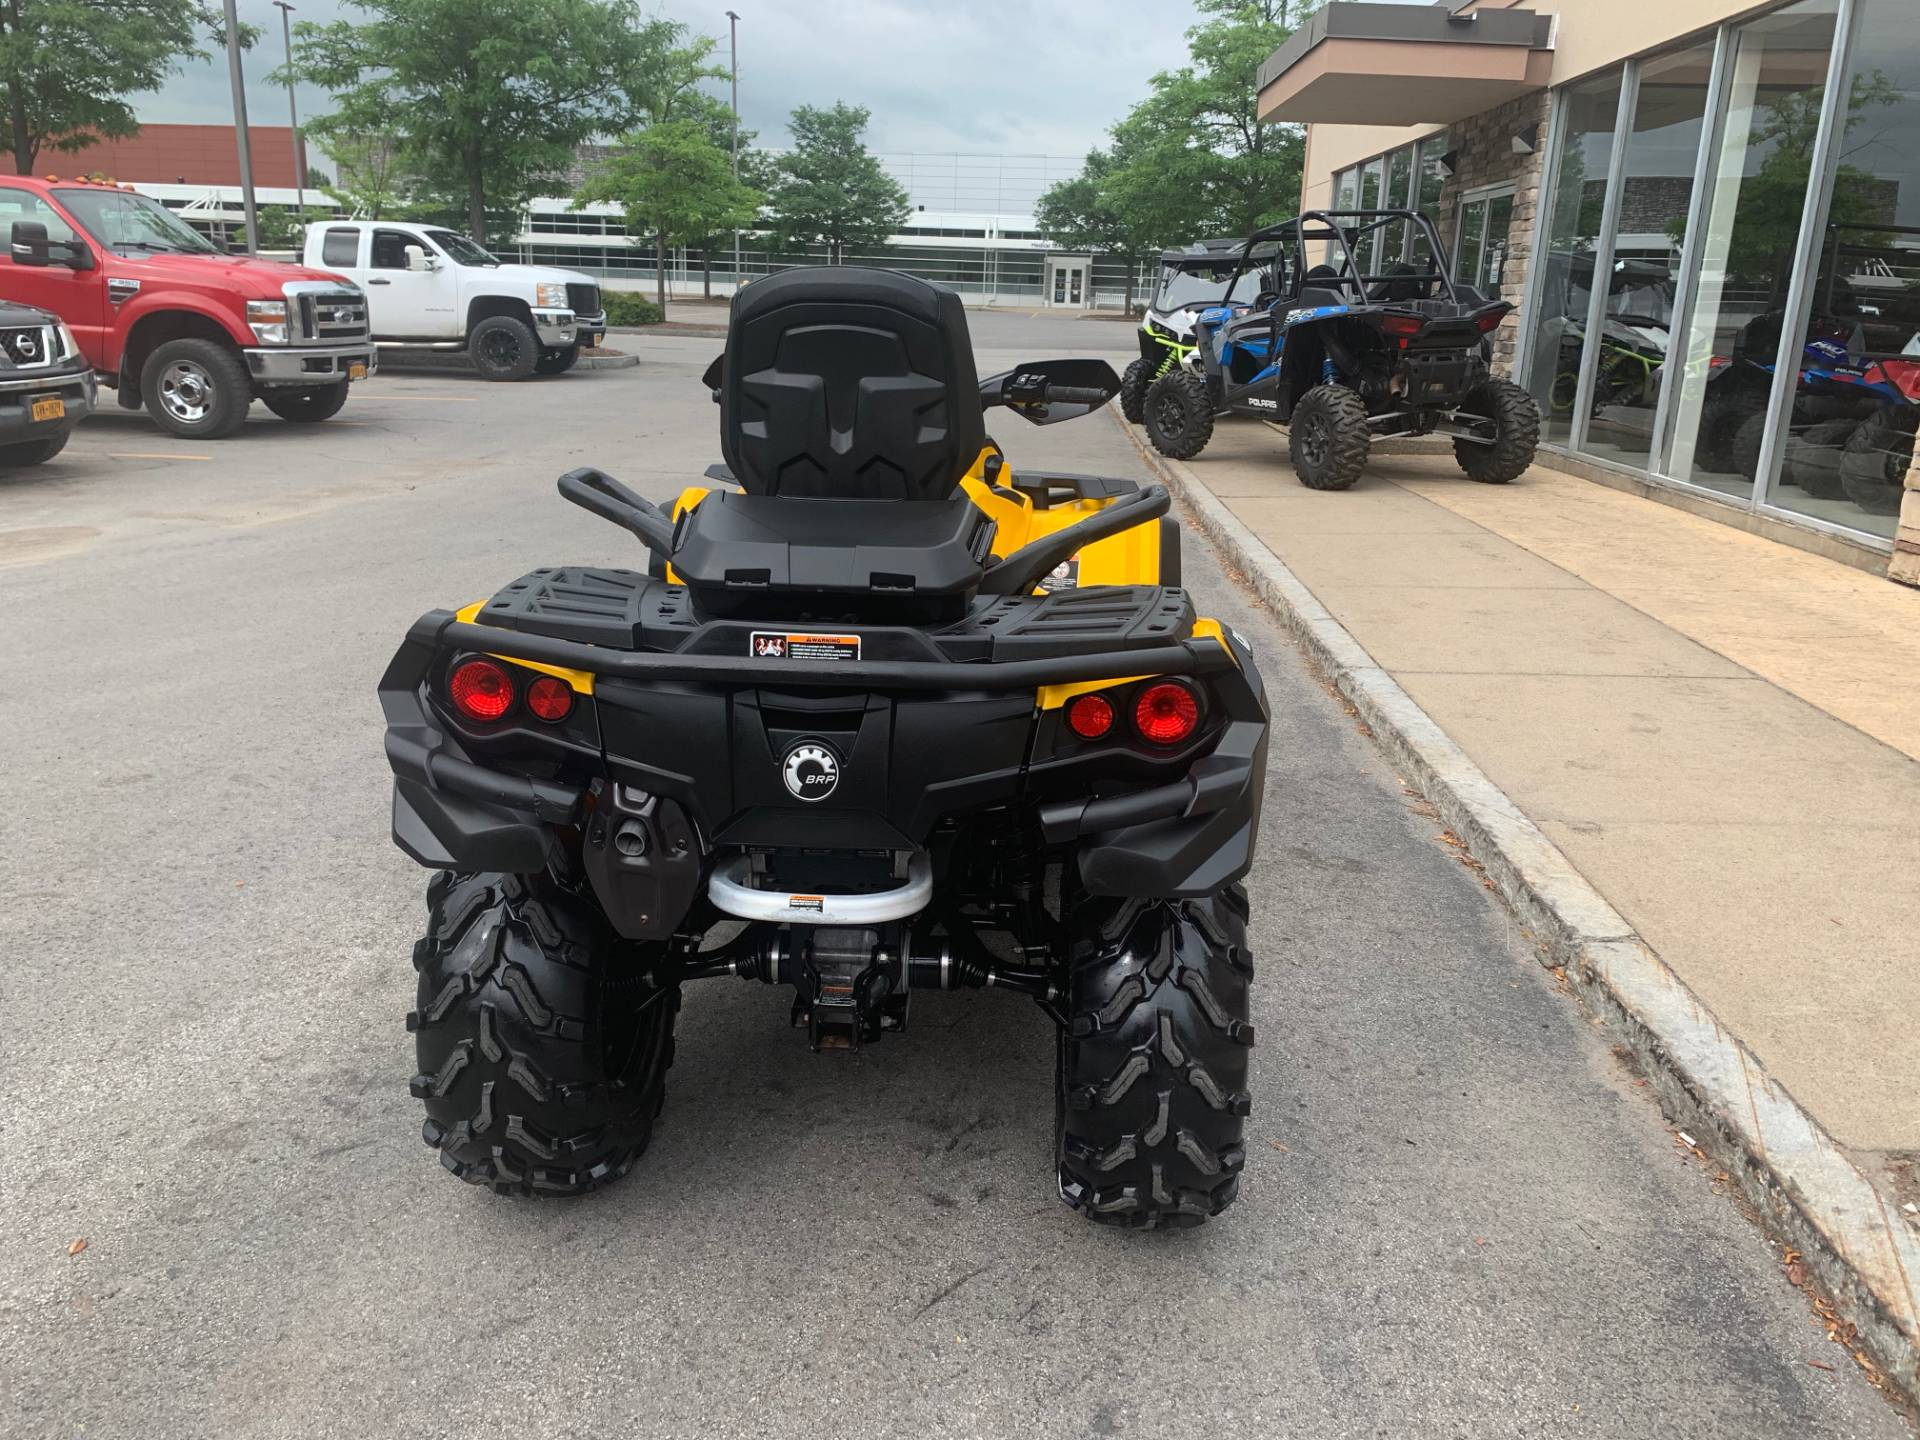 2016 Can-Am Outlander MAX XT 570 in Herkimer, New York - Photo 11